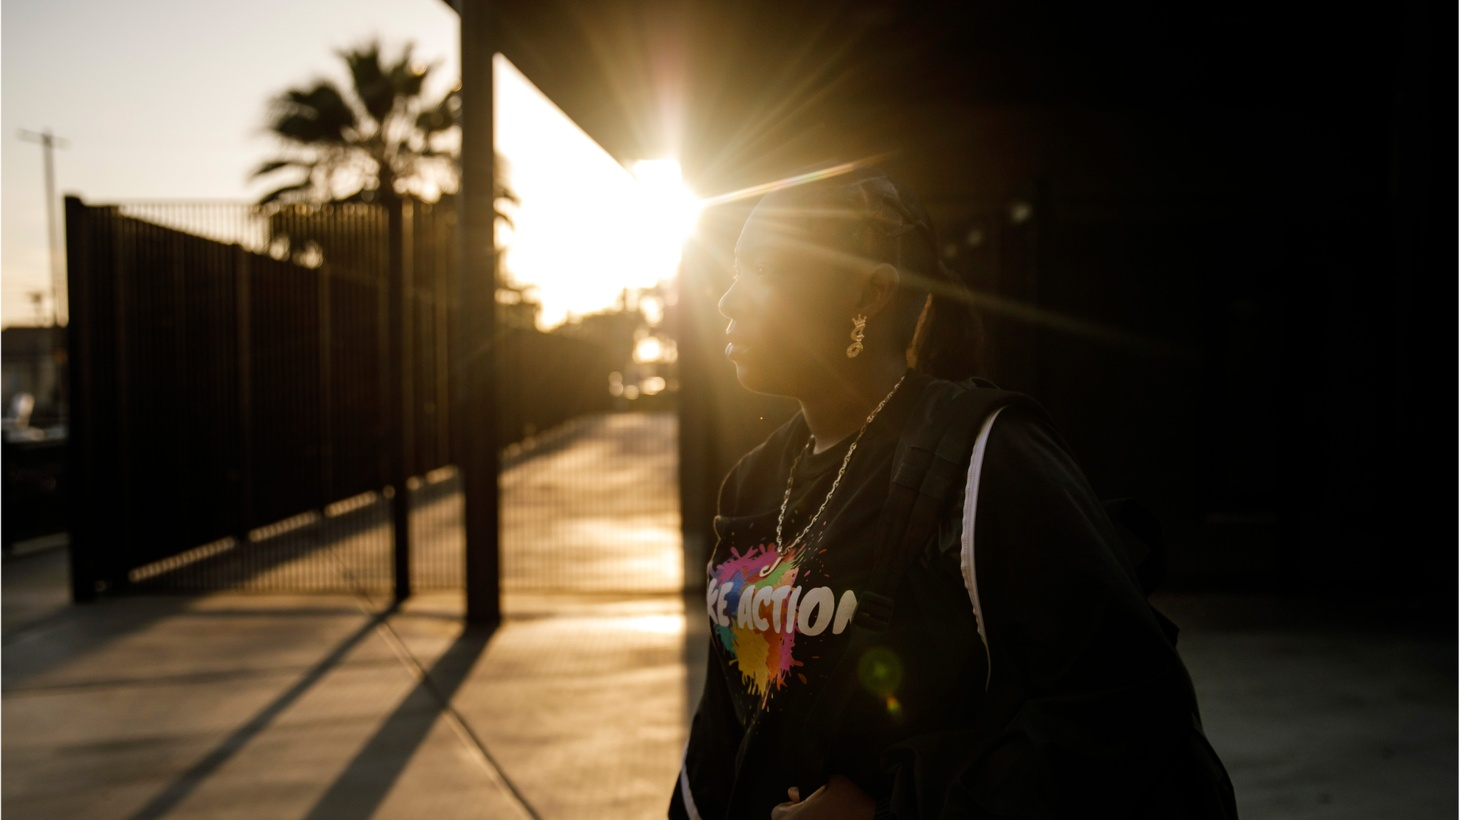 Jalyeah Collier gets ready to walk home from Hawkins High School after her after school program in Los Angeles, Calif., on Sept. 26, 2018.